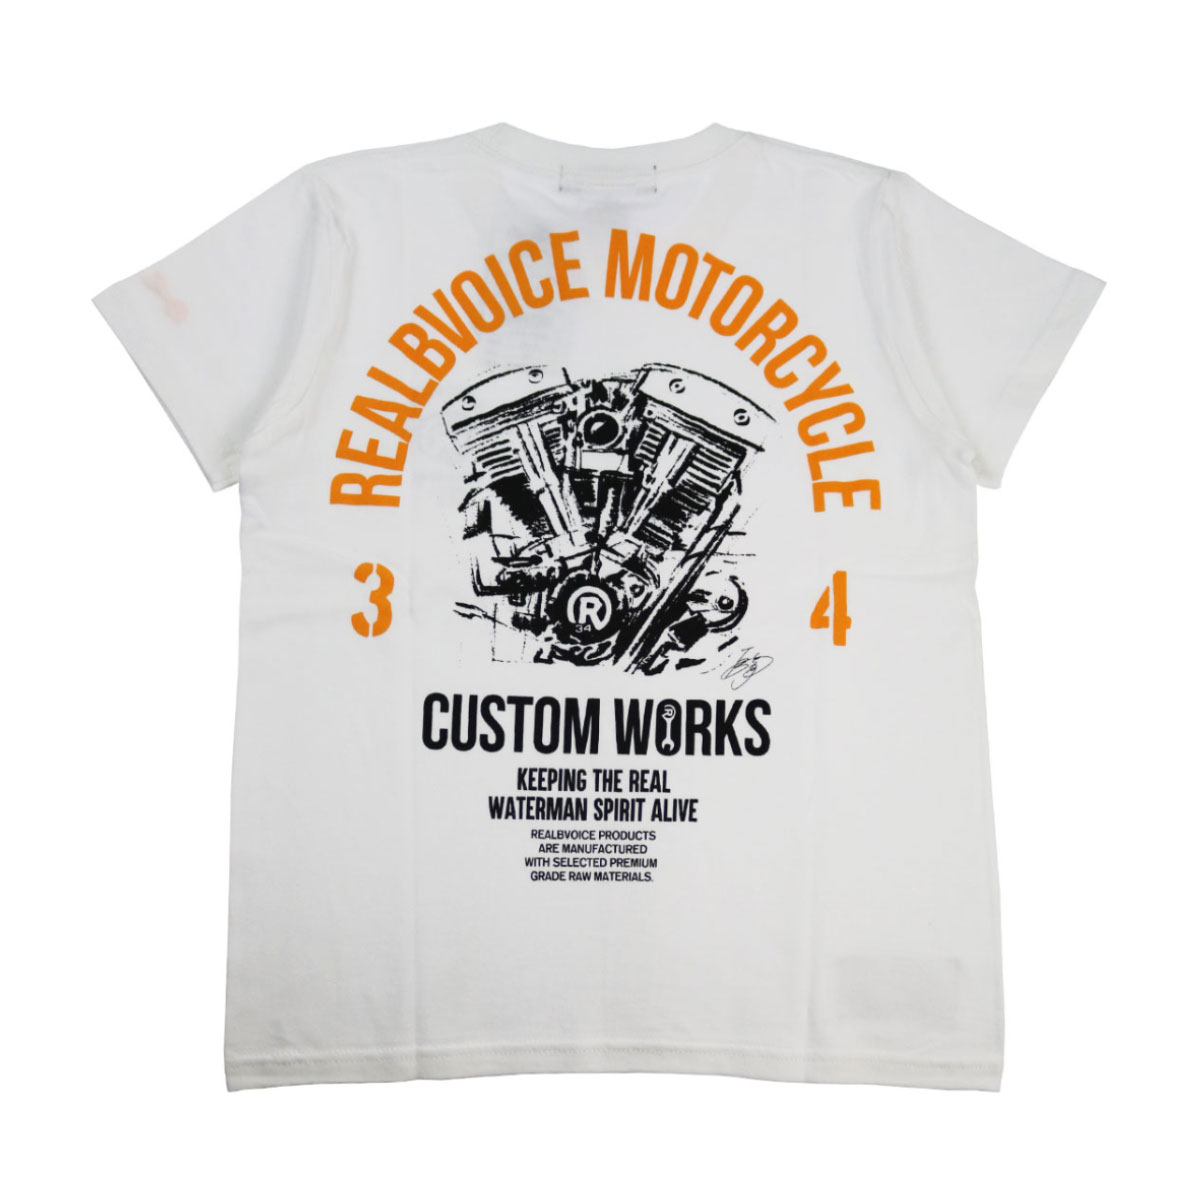 MC EIJI LIMITED CUSTUM WORKS T-SHIRT